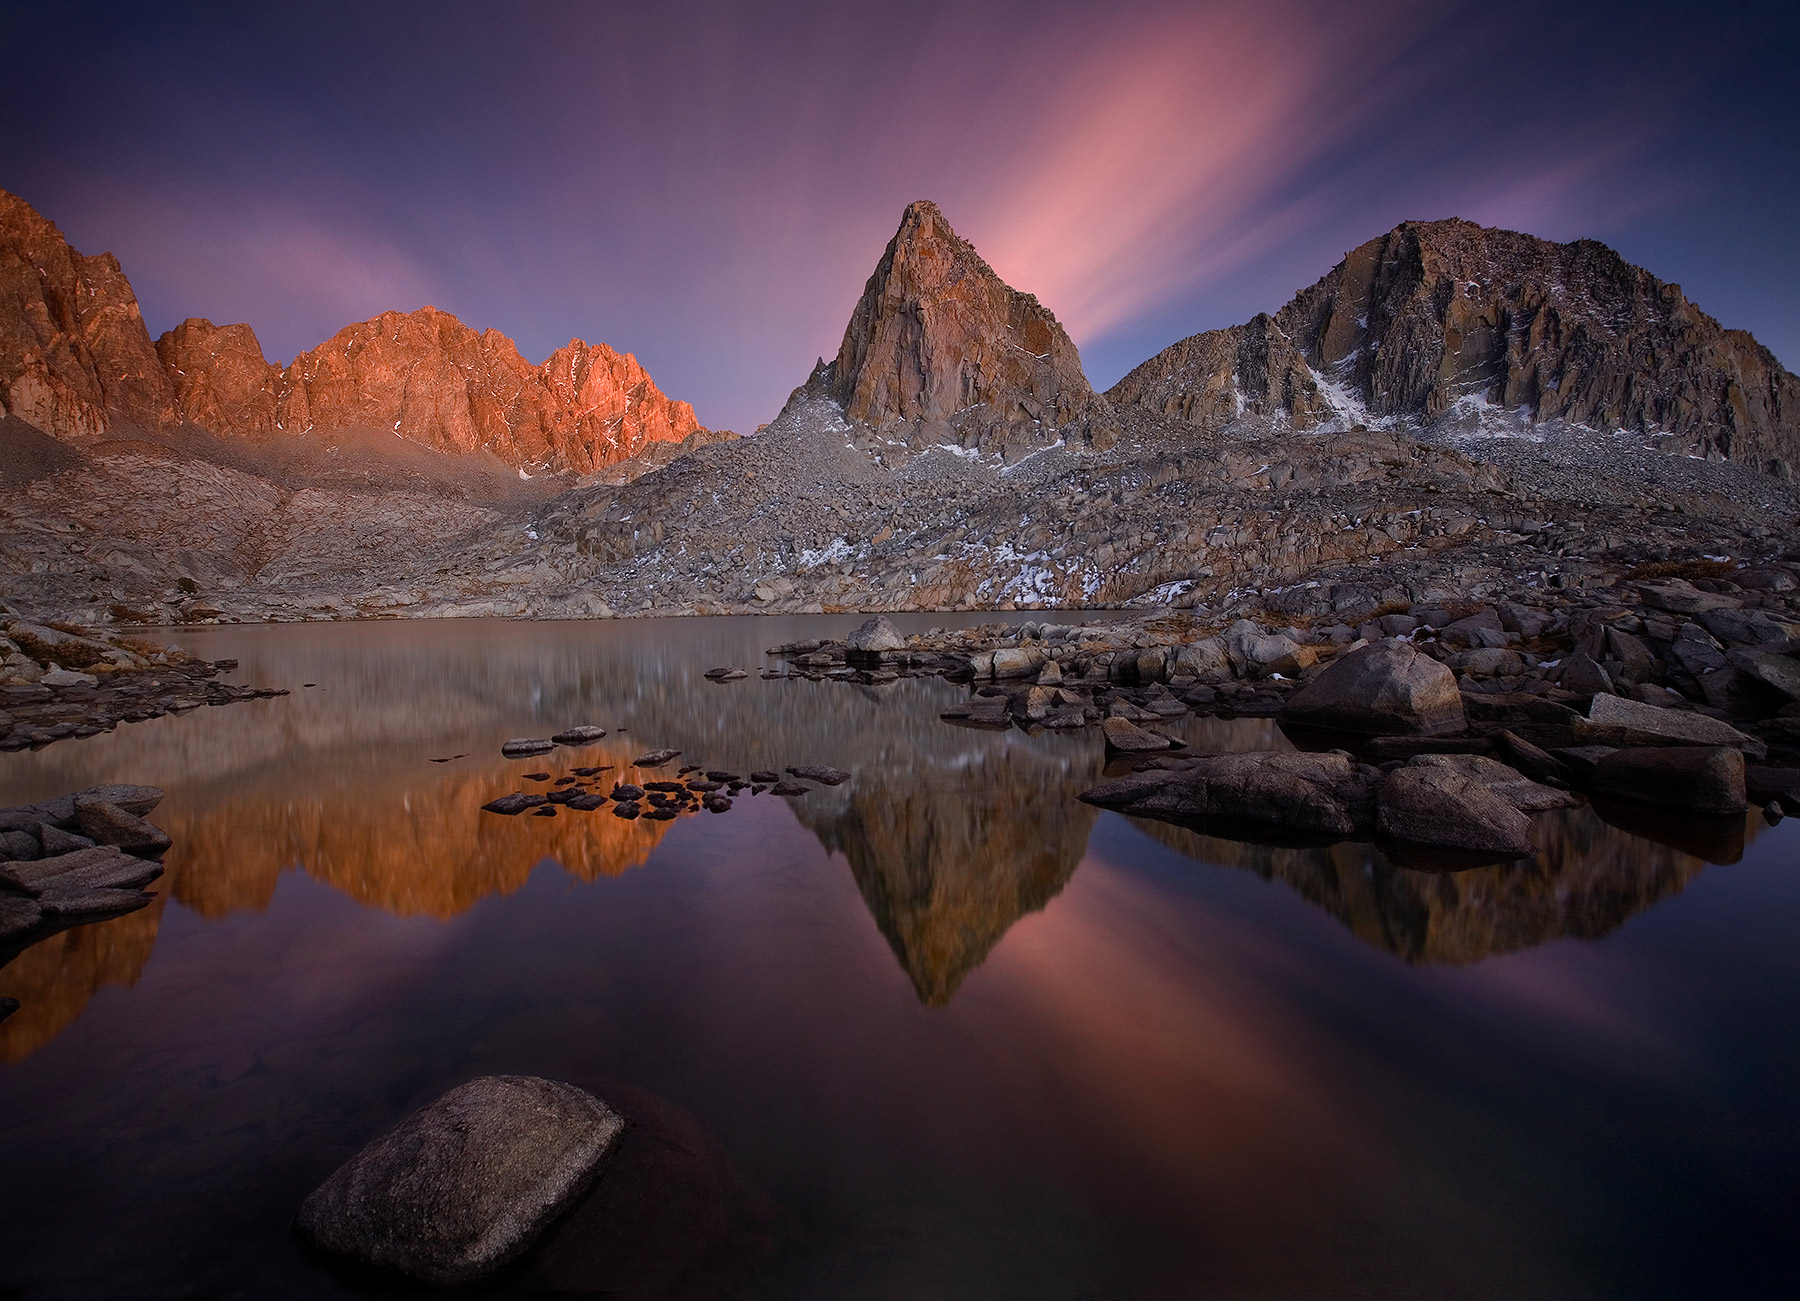 Sierra, backcountry, long exposure, twilight, colors, clouds, photo